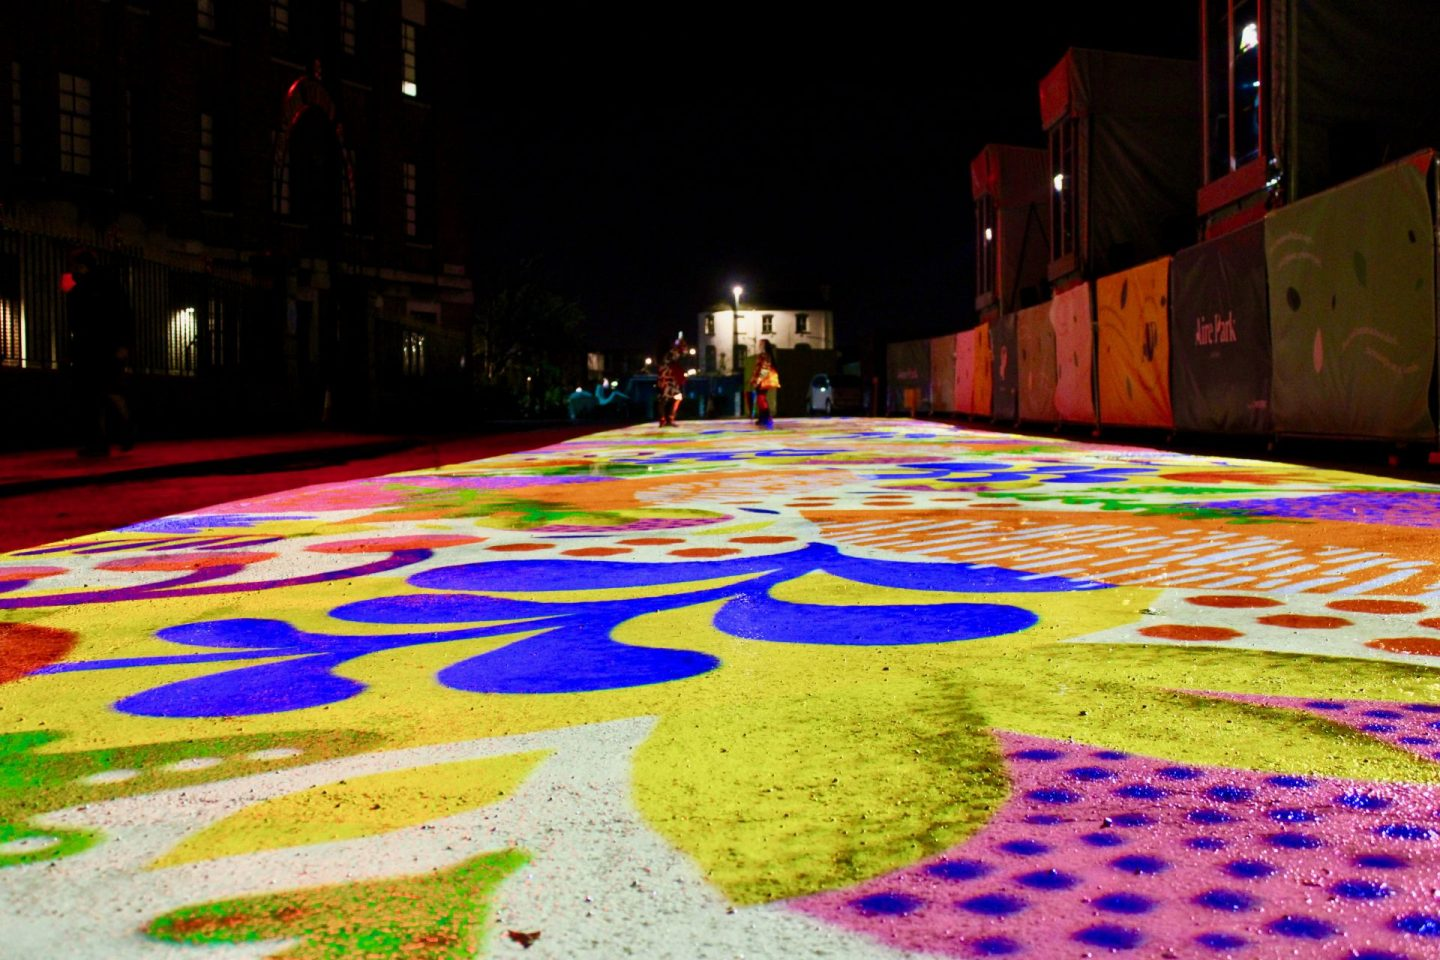 A long range shot from ground level showing a colourful projection on the floor as part of Leeds Light Night